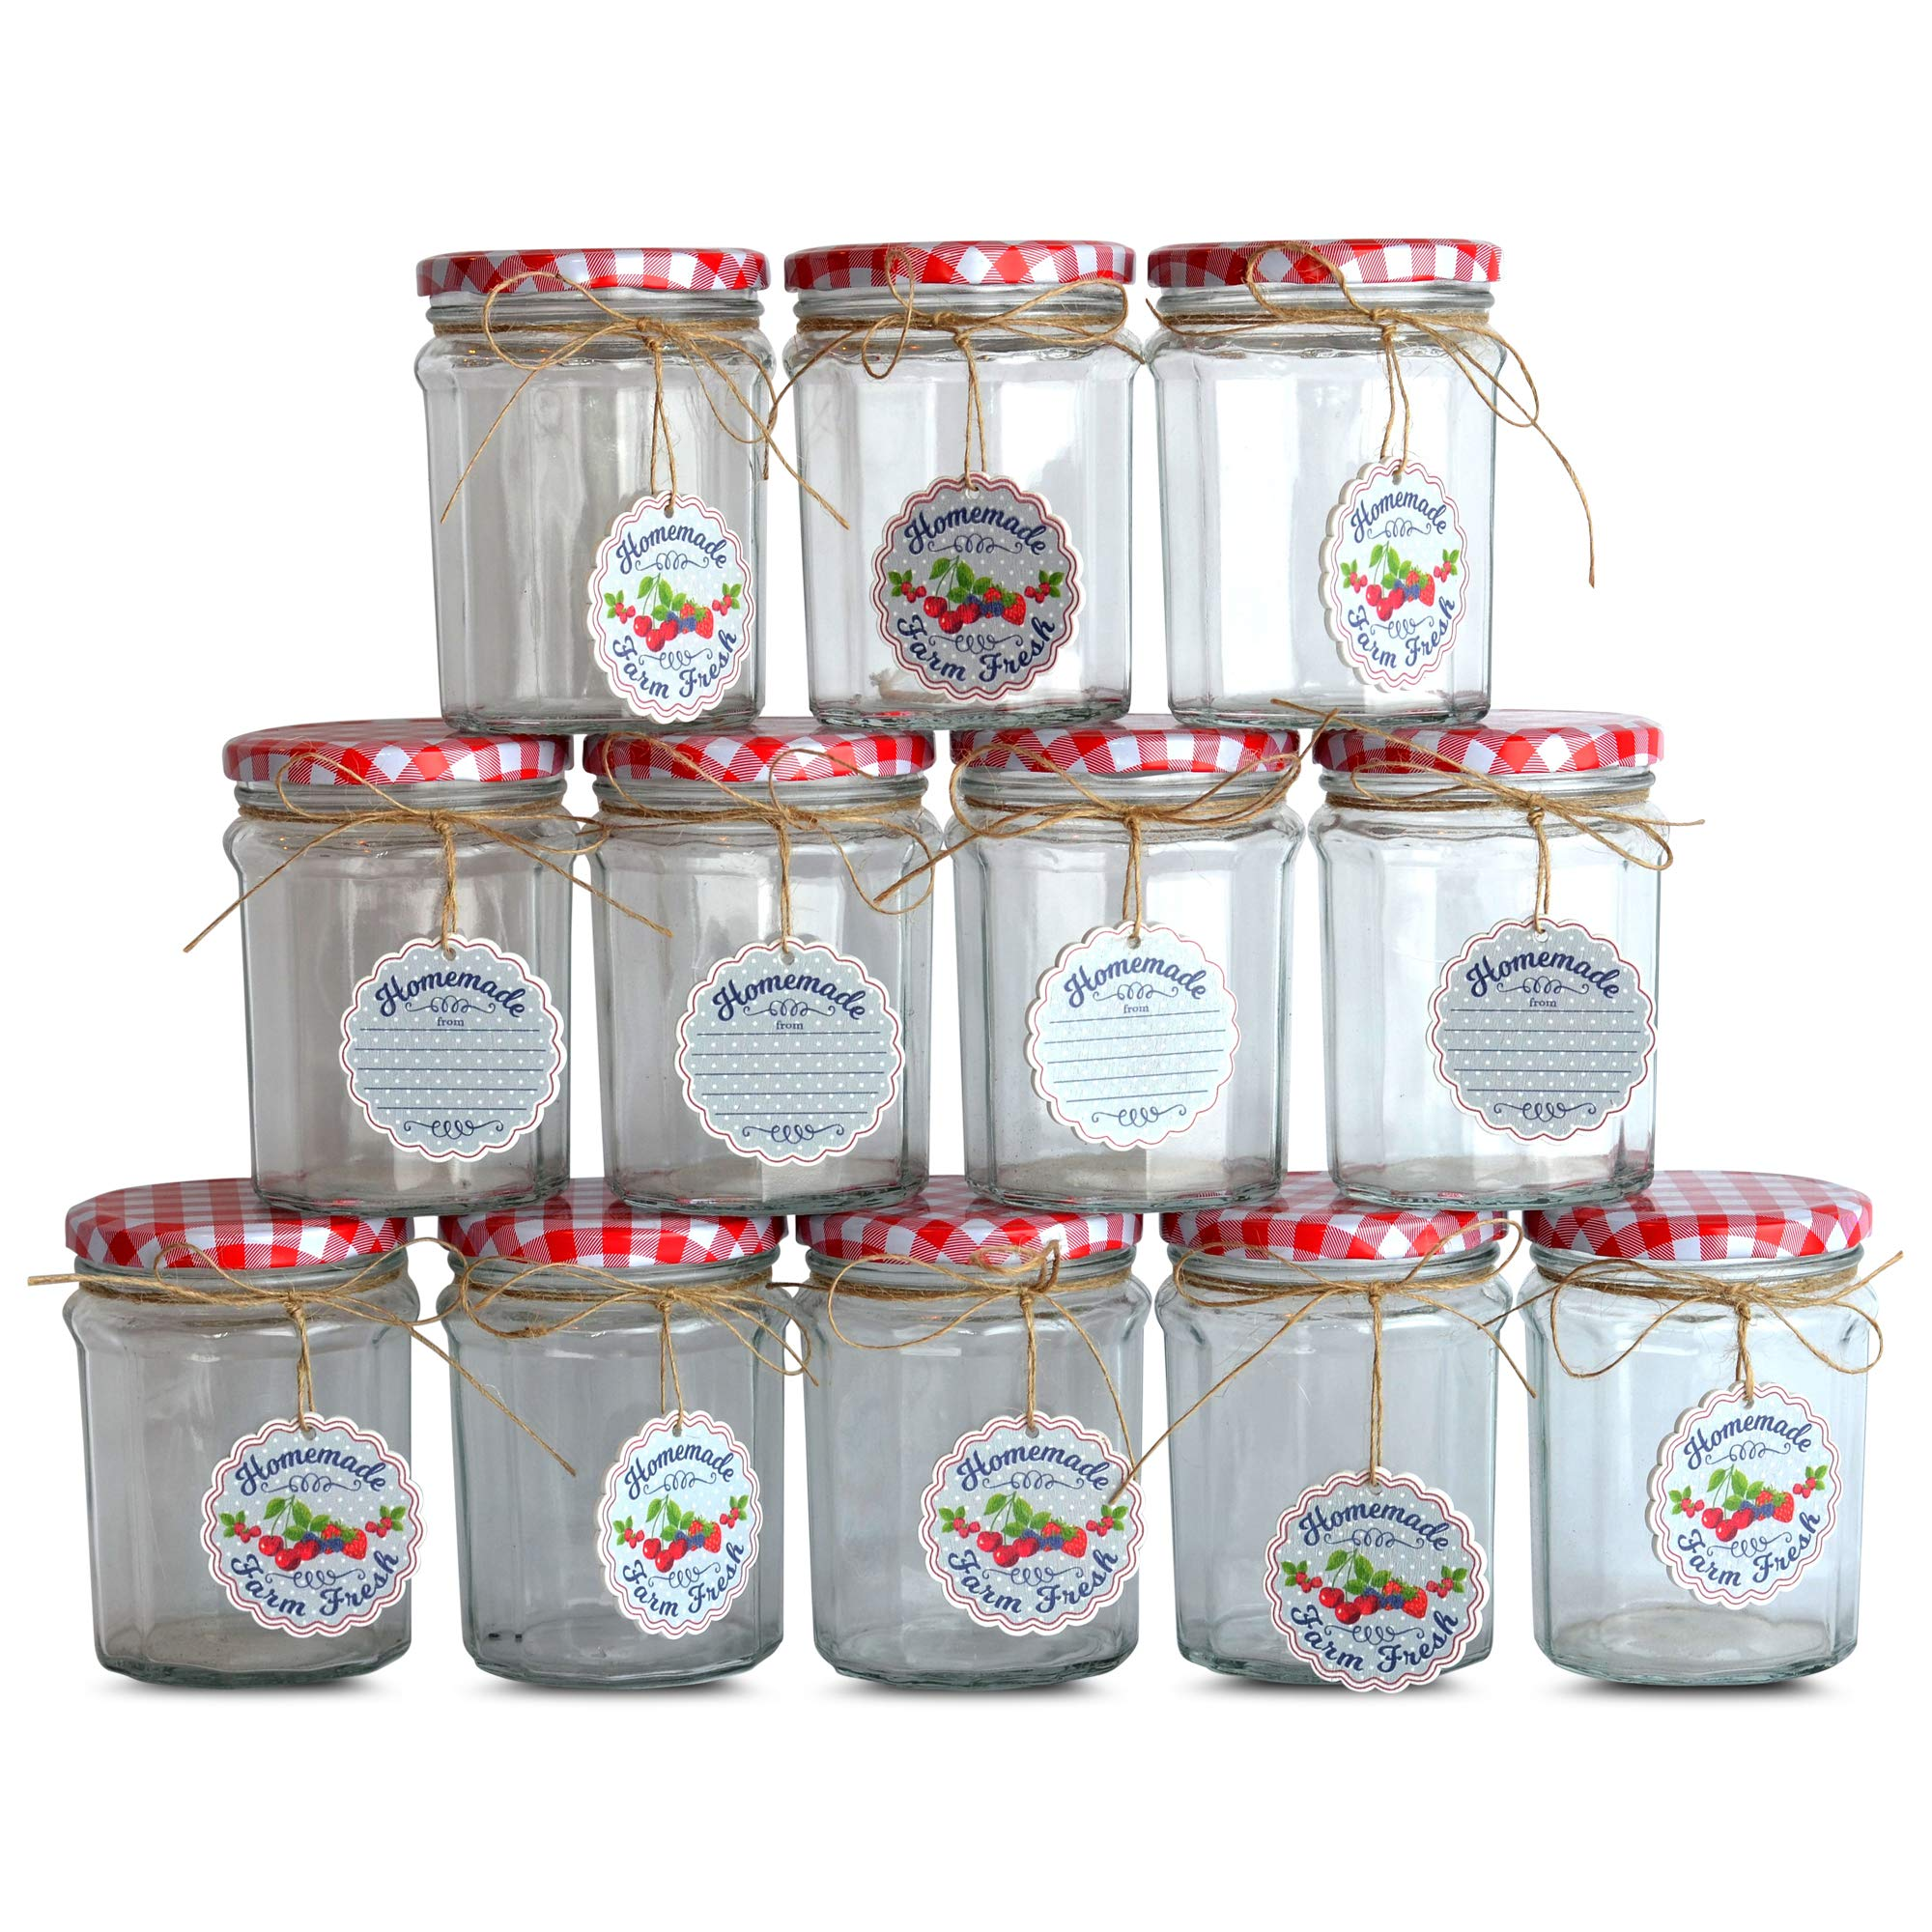 Farmer's Market Jelly Jars, Set of 12, Gift Tags, Twine, Red and White Gingham Screw Tops, 3 1/4 Diameter x 4 1/2 Tall Inches, Classic Faceted Canning Mason Glass, Food Safe, by WHW